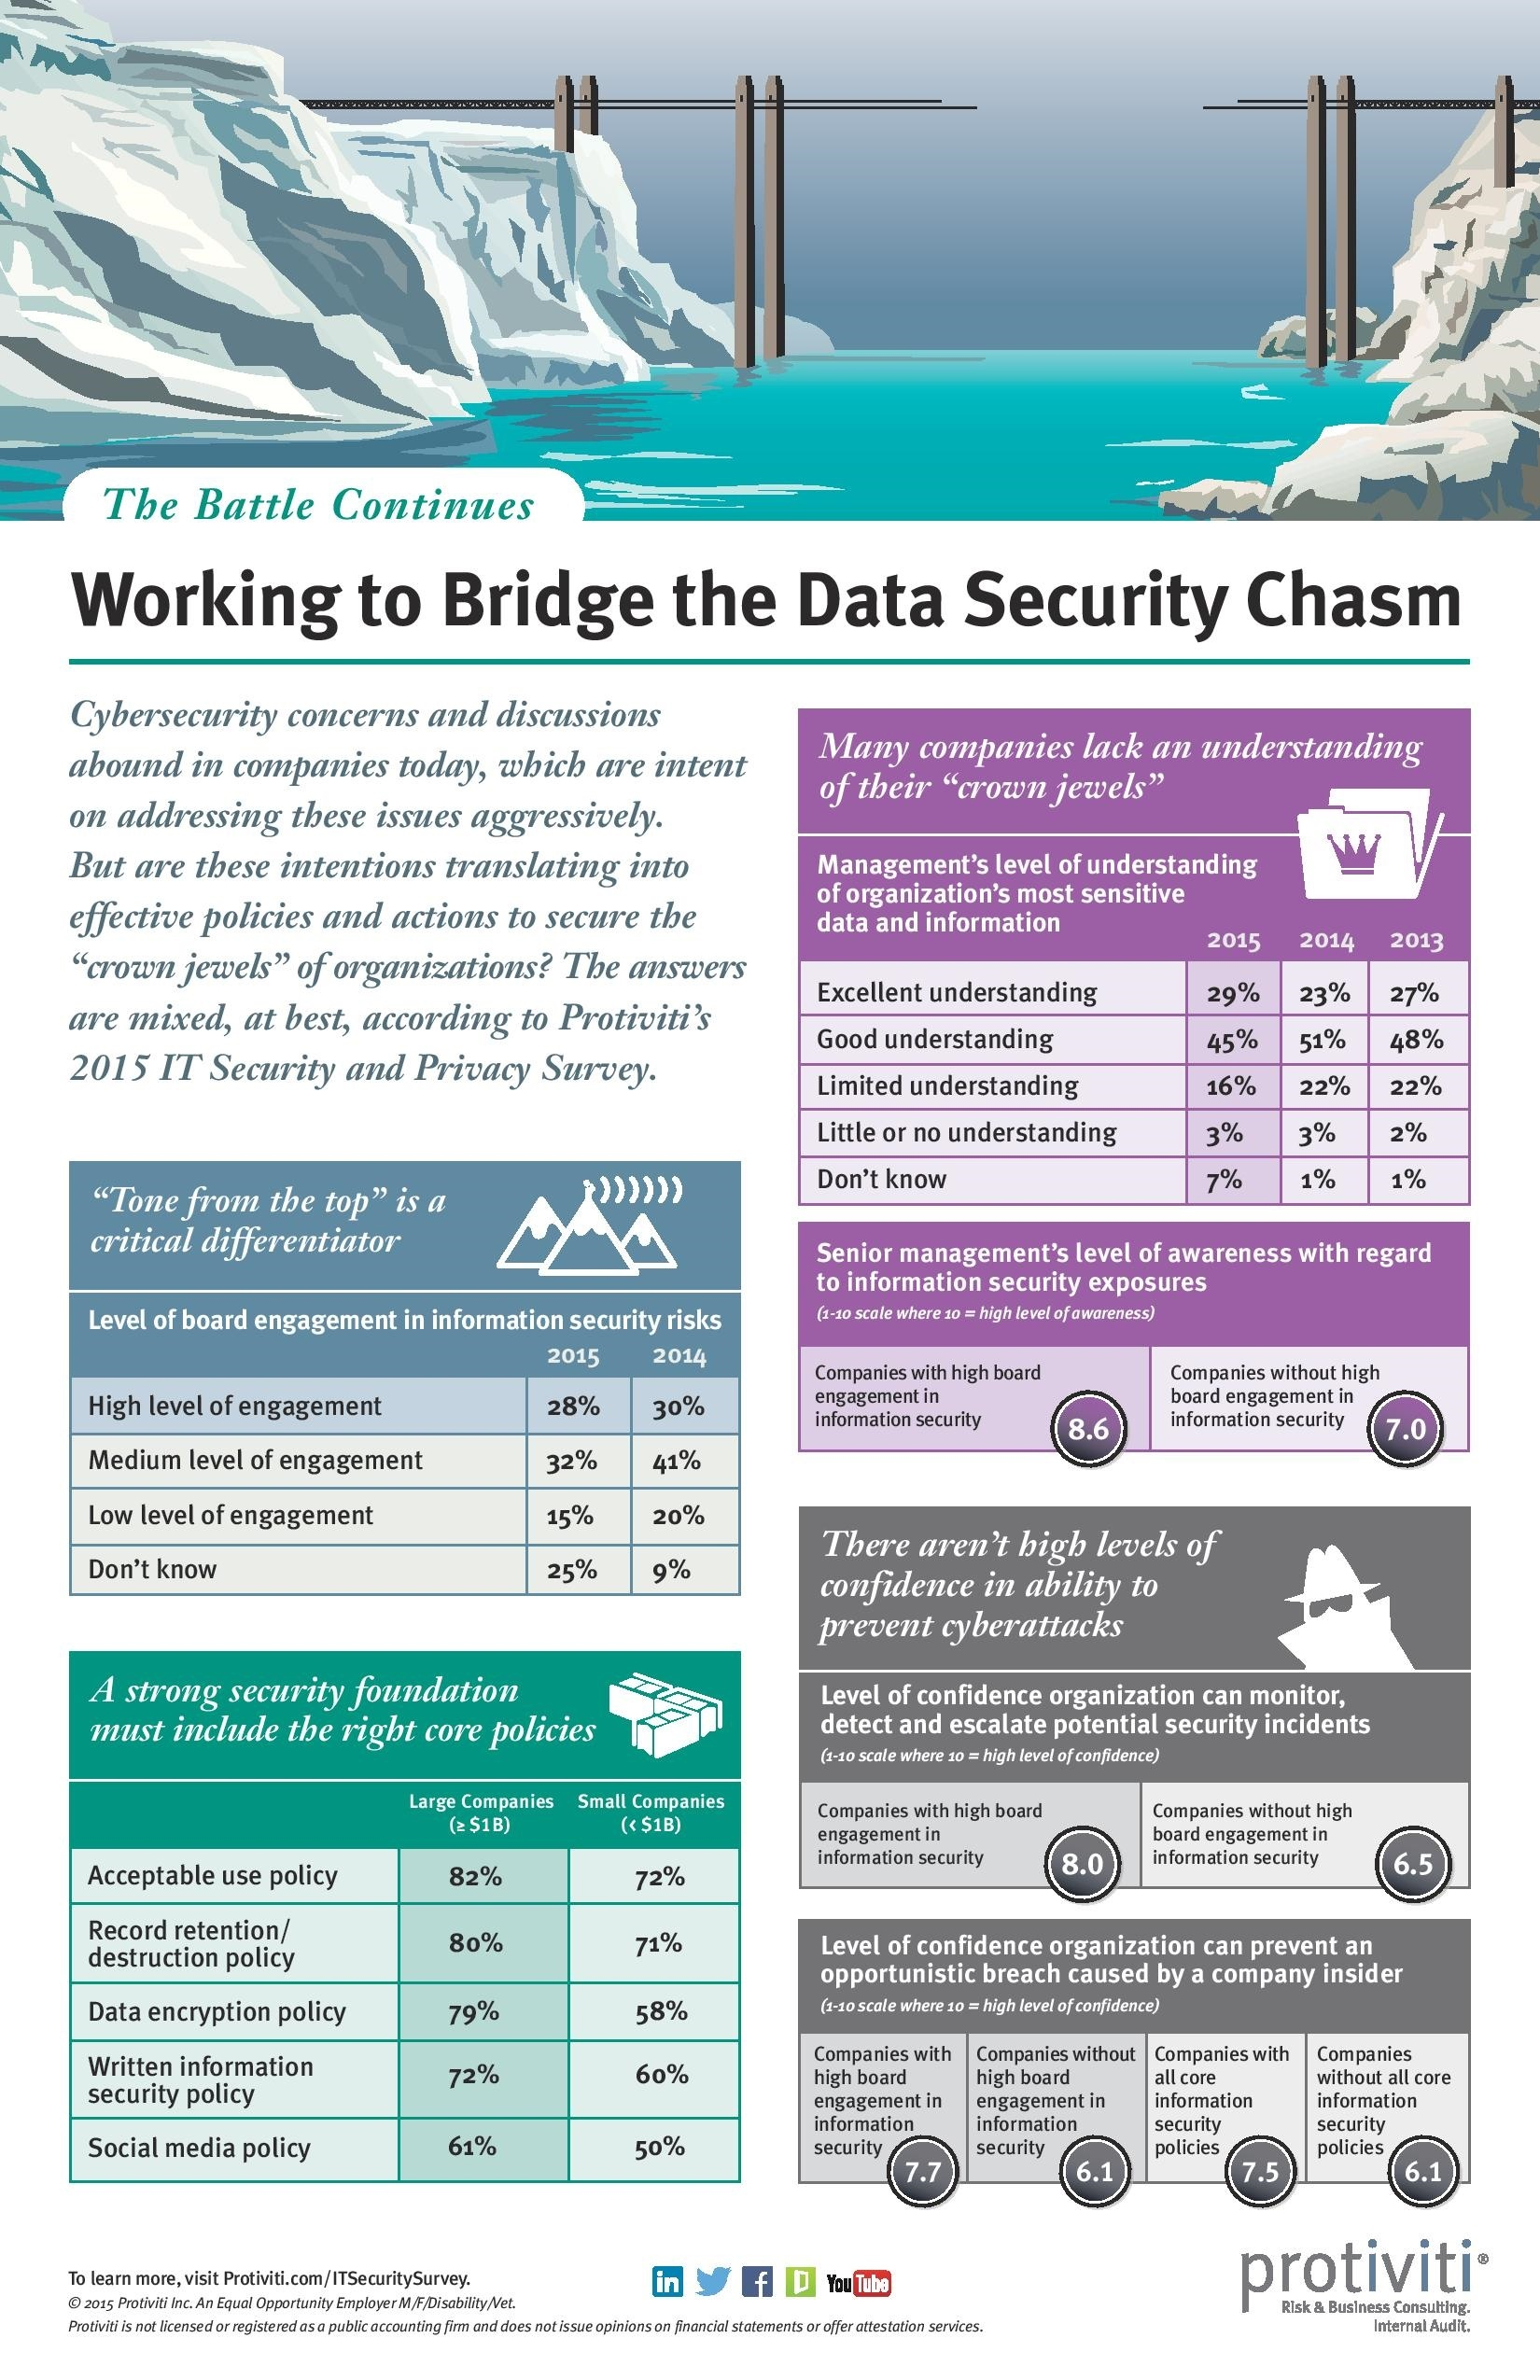 Thumbnail screenshot of the Working to Bridge the Data Security Chasm infographic